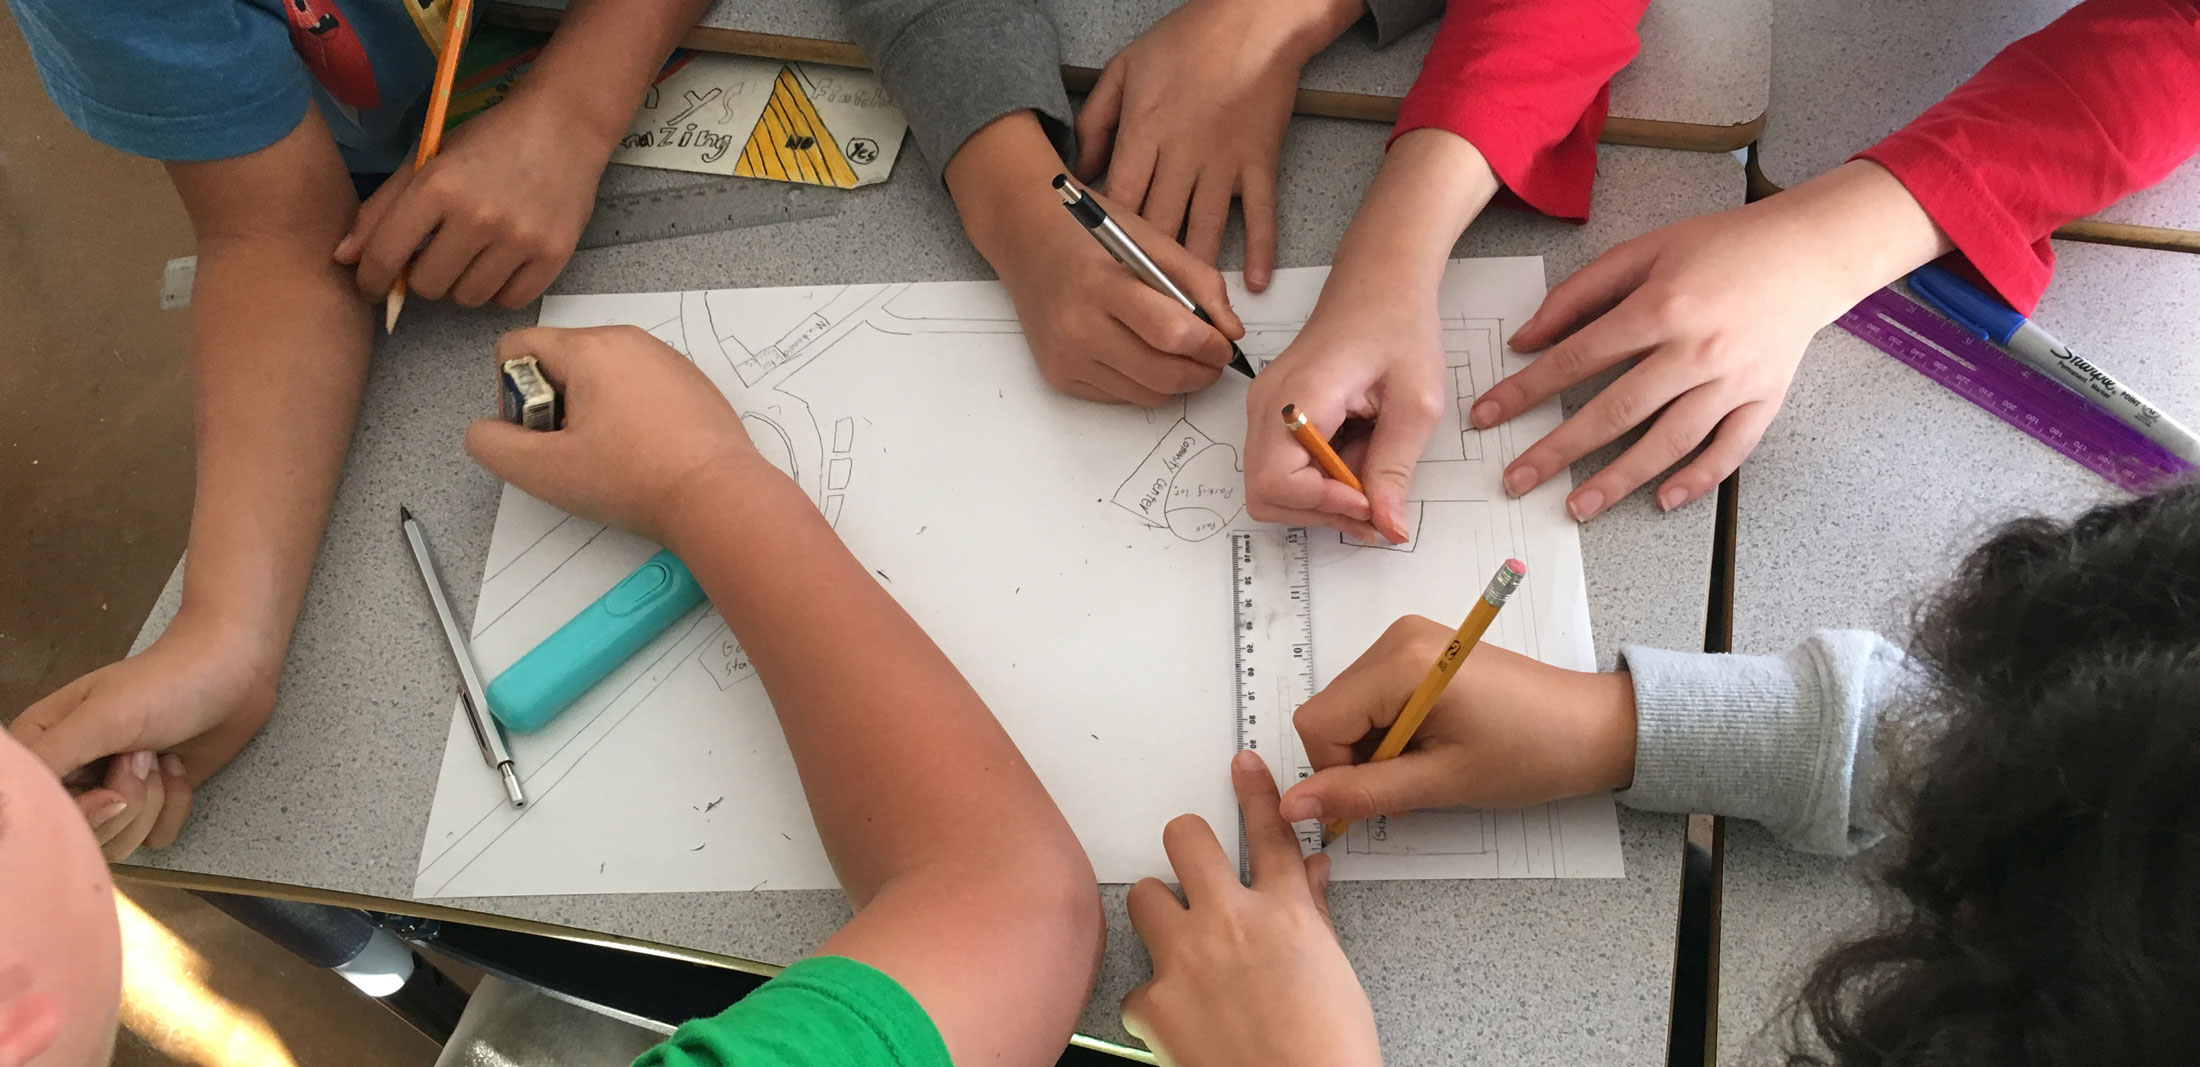 architecture workshops for kids - Design, Build, Learn